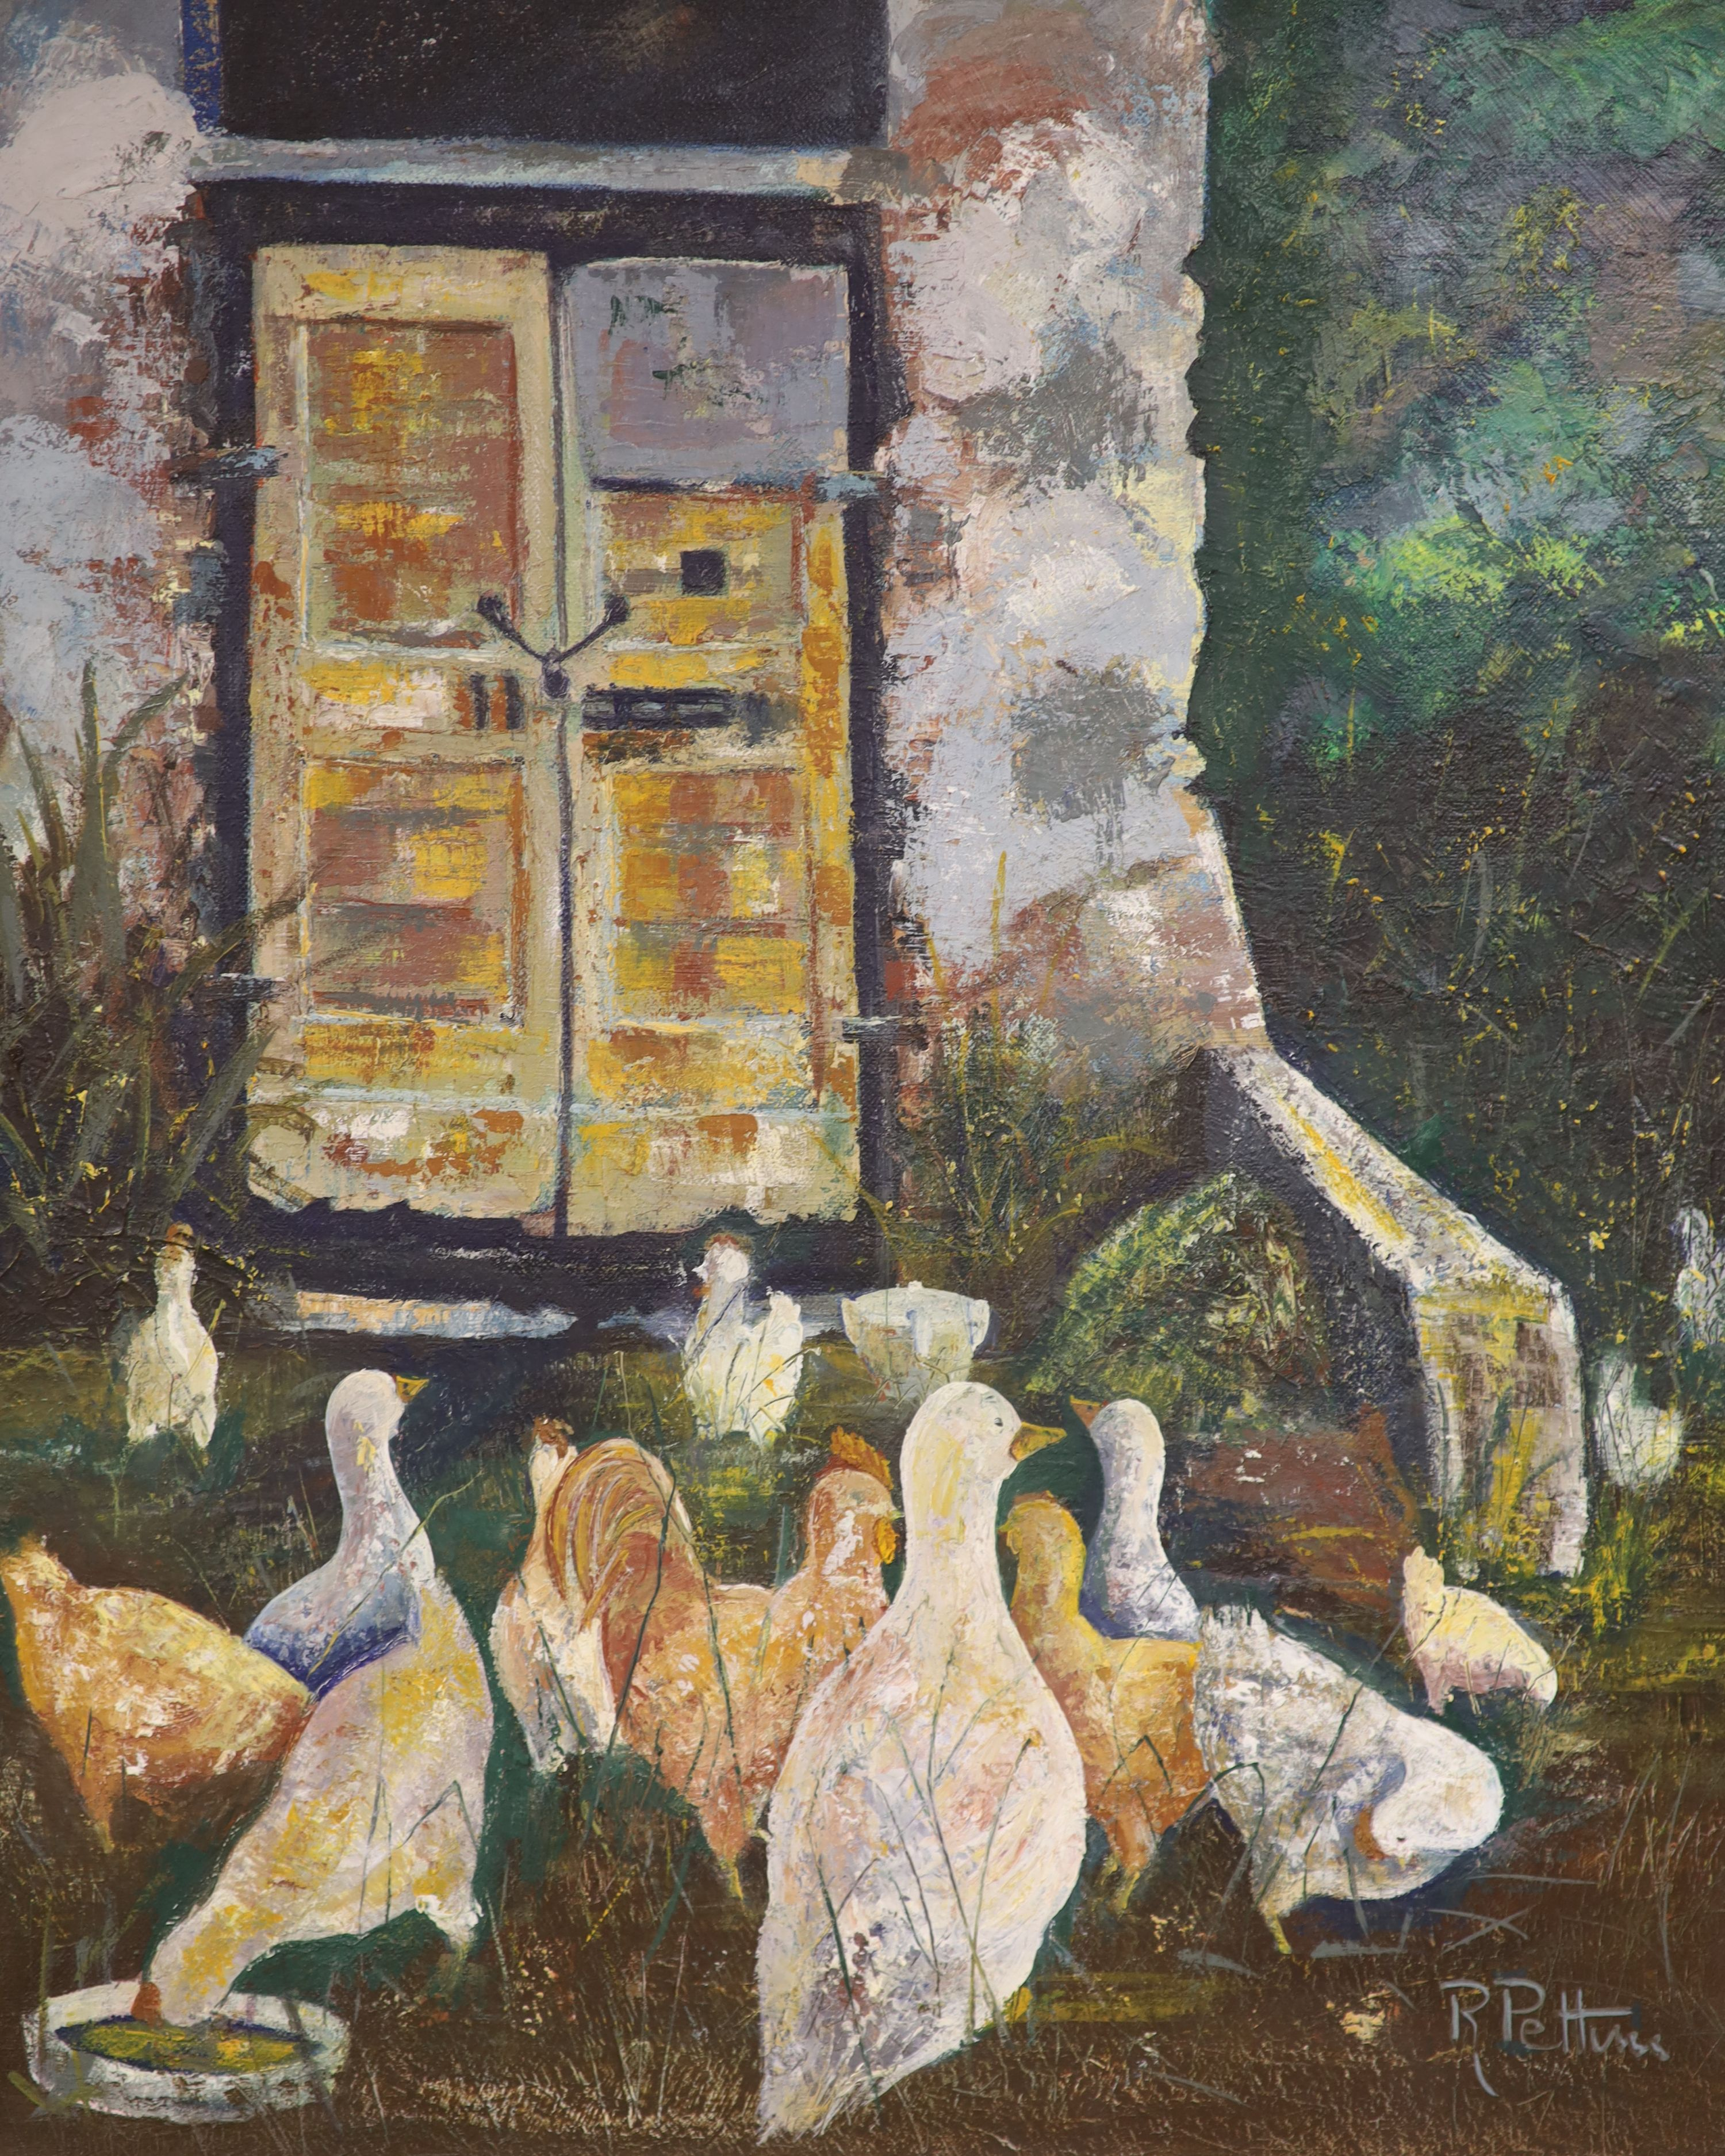 R. Pettini, oil on canvas, Poultry beside a church door, signed, 59 x 49cm